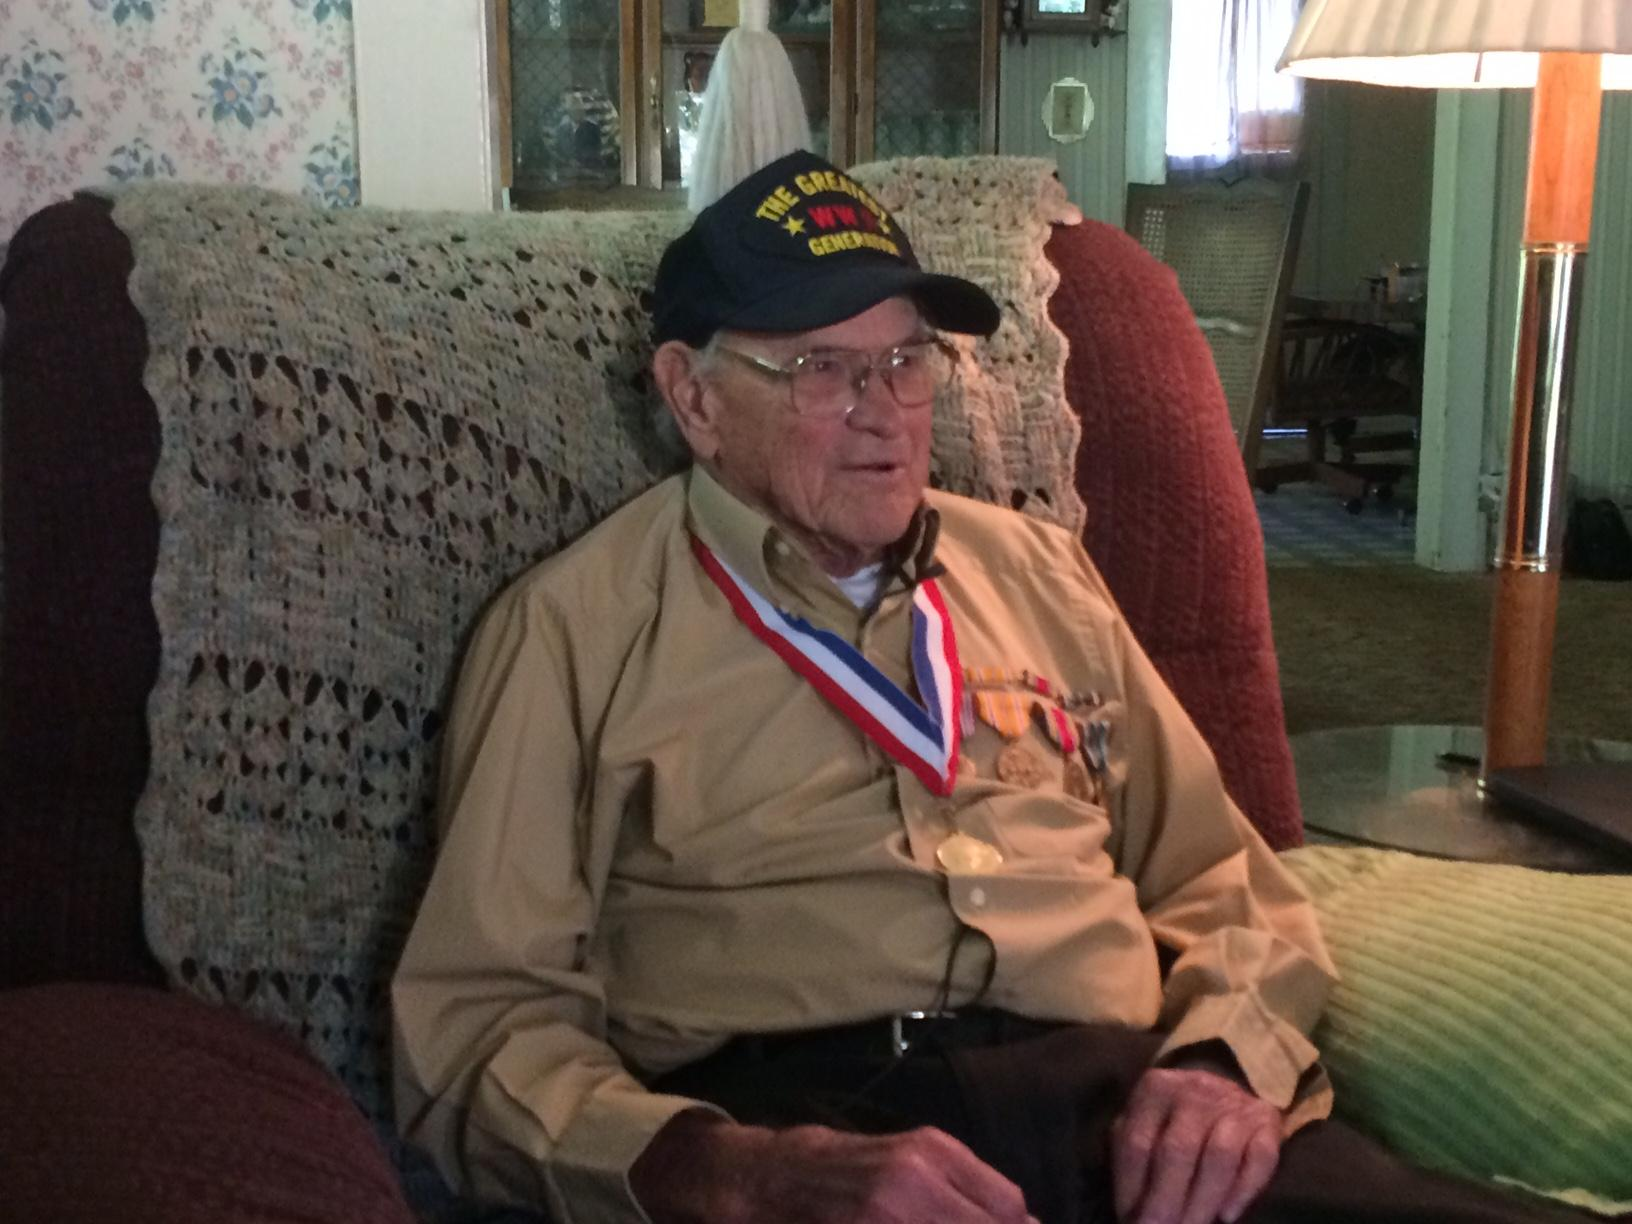 Jim Carroll, 93, of Corvallis is set to fly to France next week to receive the French Legion of Honor medal. Carroll and 8 other U.S. veterans of World War II will visit Paris and Normandy as part of the trip. Carroll was in the US Army Air Force for 2.5 years, primarily as part of a fueling team of -38 and P-51 aircraft. He served in Europe with a brief tour of duty in the Pacific theater in the summer of 1945. The recipient of 4 Bronze Stars, Carroll was in the 485th Service Squadron of the 9th Air Force unit and saw action on Day 6 of the Normandy invasion and at the Battle of the Bulge. (Tom Adams/SBG)